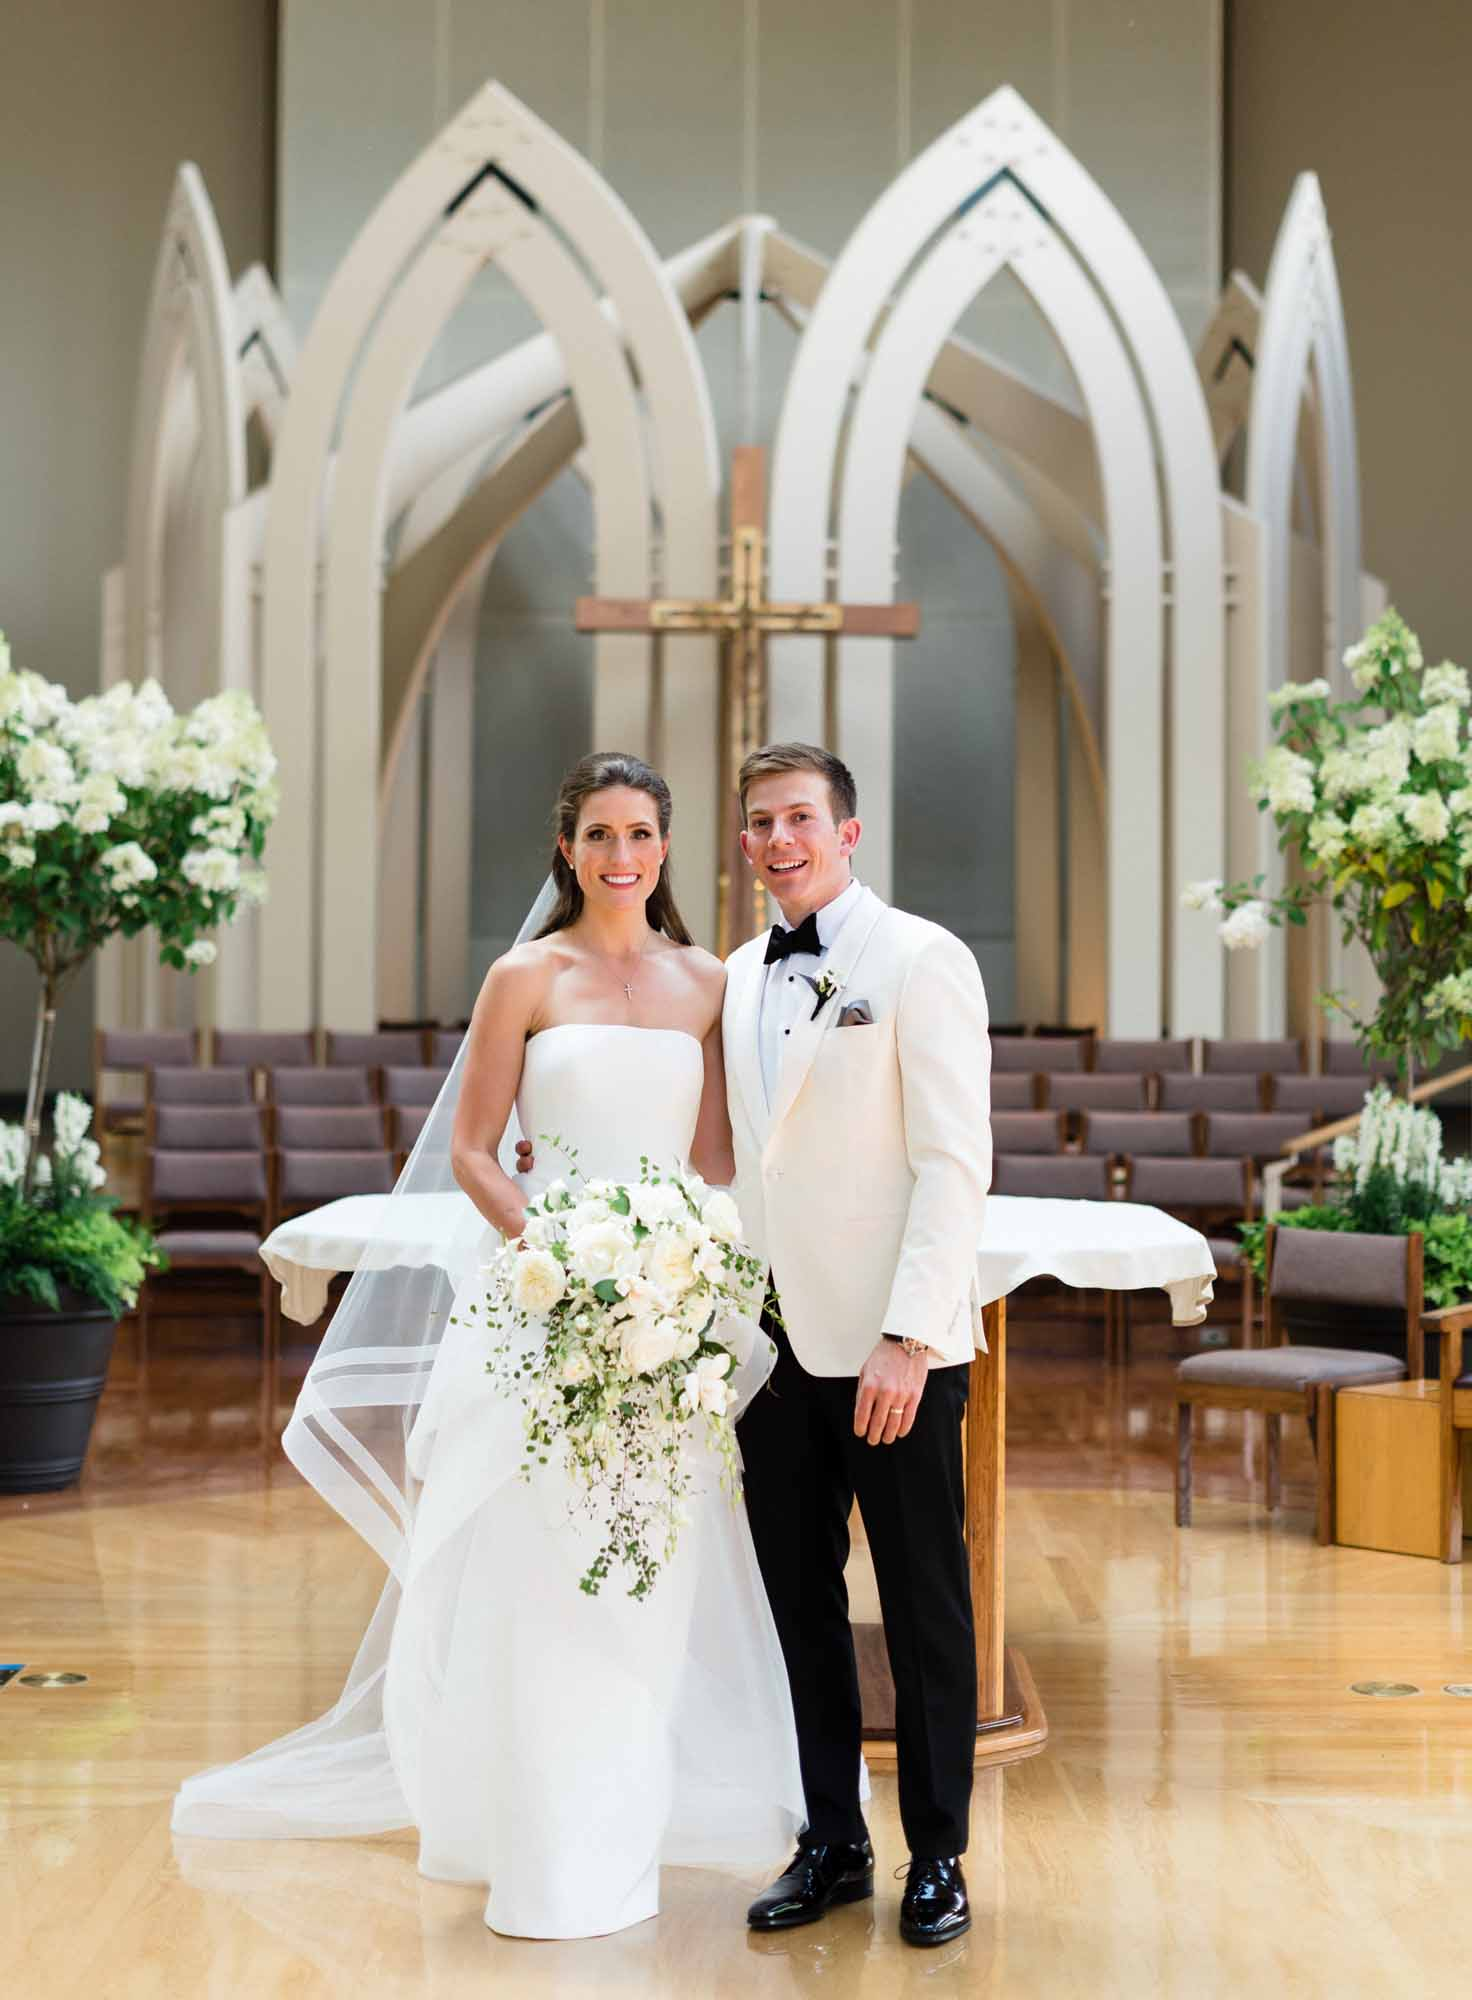 Bride and groom in front of church altar at their wedding